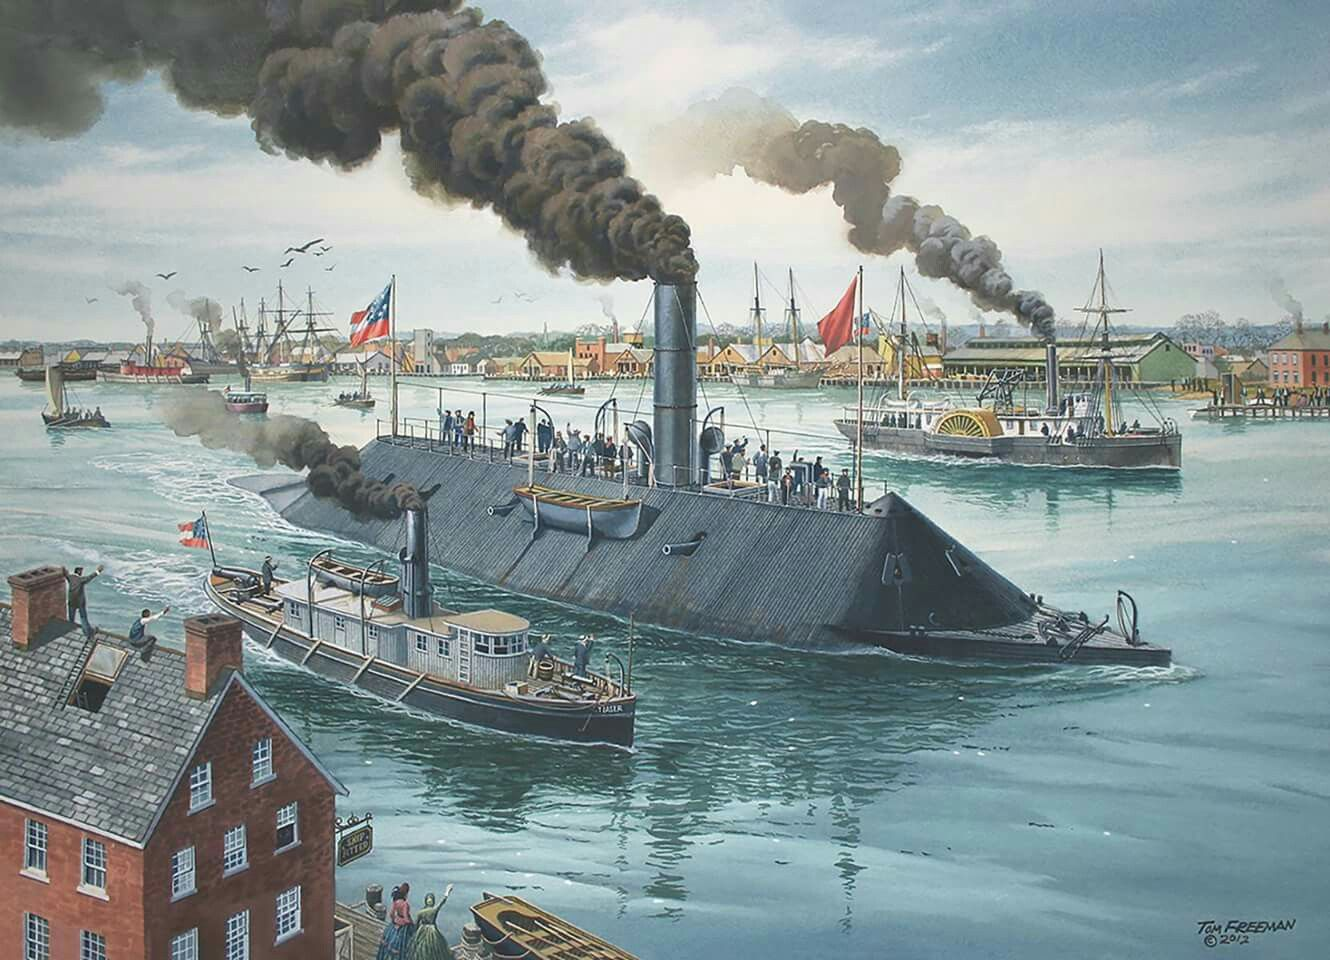 Civil war ships photo